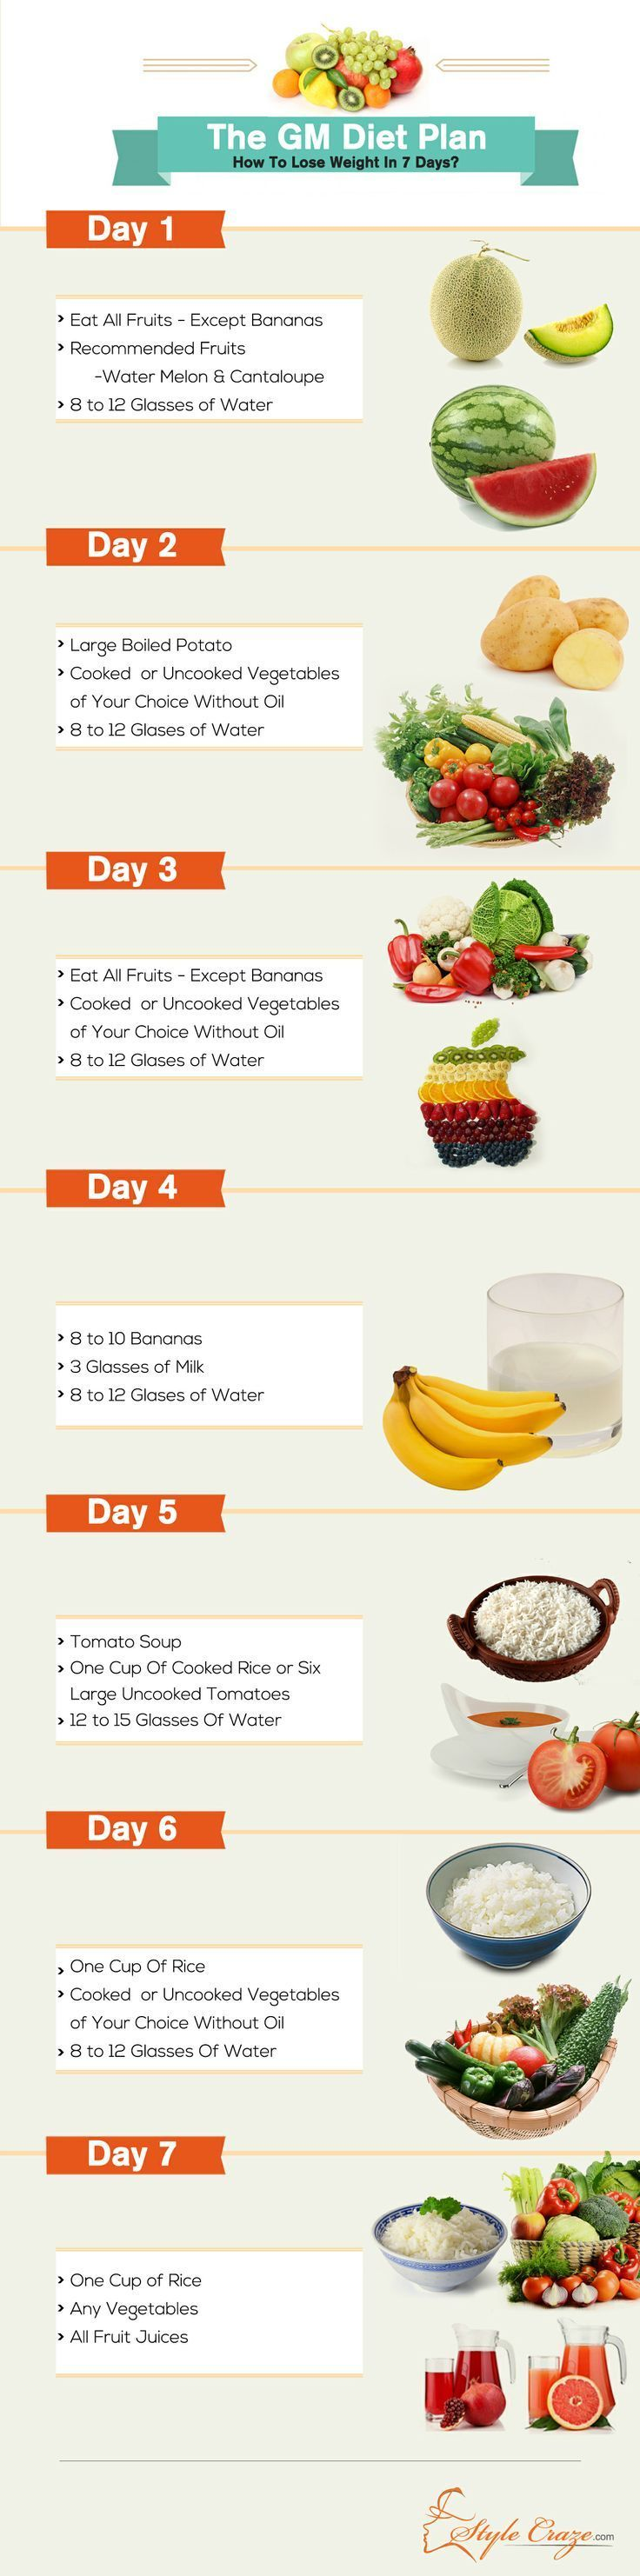 The GM Diet Plan: How To Lose Weight In Just 7 Days? : Hence, the diet that you intake is crucial. You may have heard of the Atkins diet which is a diet low in carbohydrates meant to resolve overweight issues. Well, now it's time for us to illuminate you on another equally renowned diet plan.